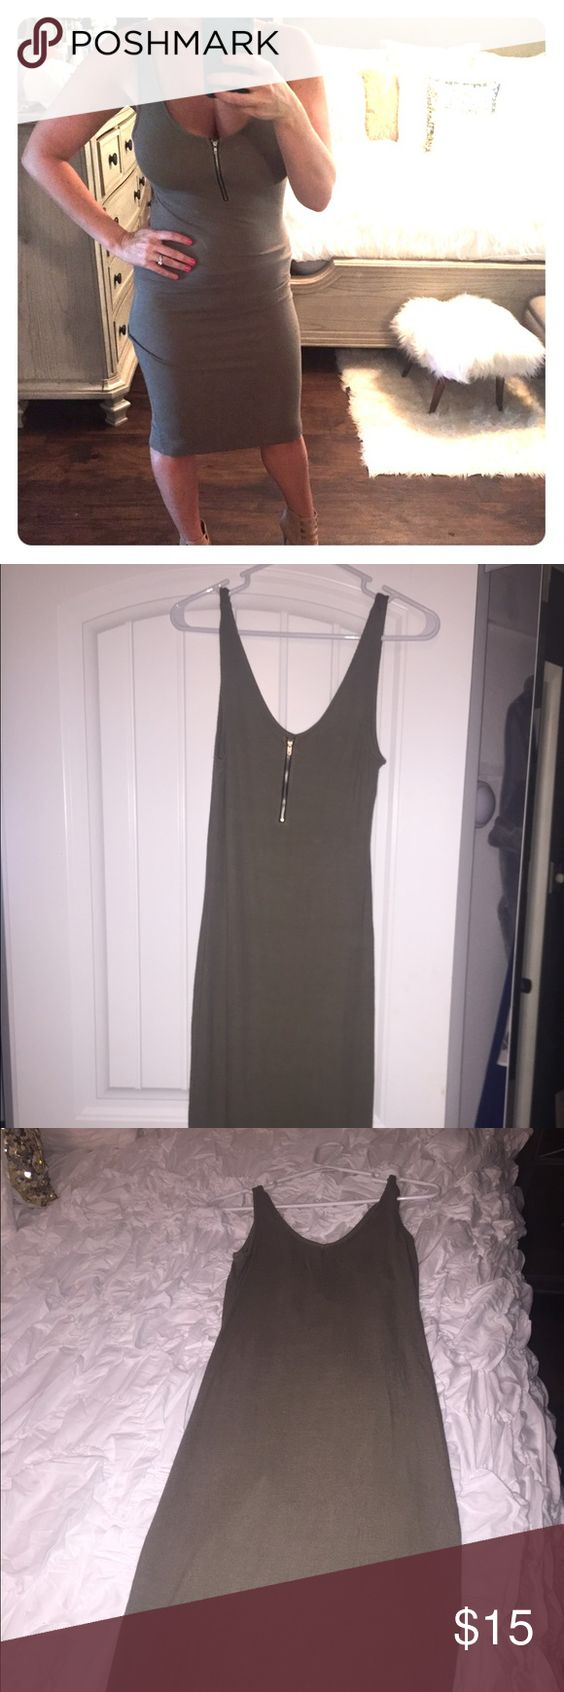 Olive dress Olive green dress with front zipper. Form fitting but super comfortable!  Never worn but no tags. Size M Dresses Midi